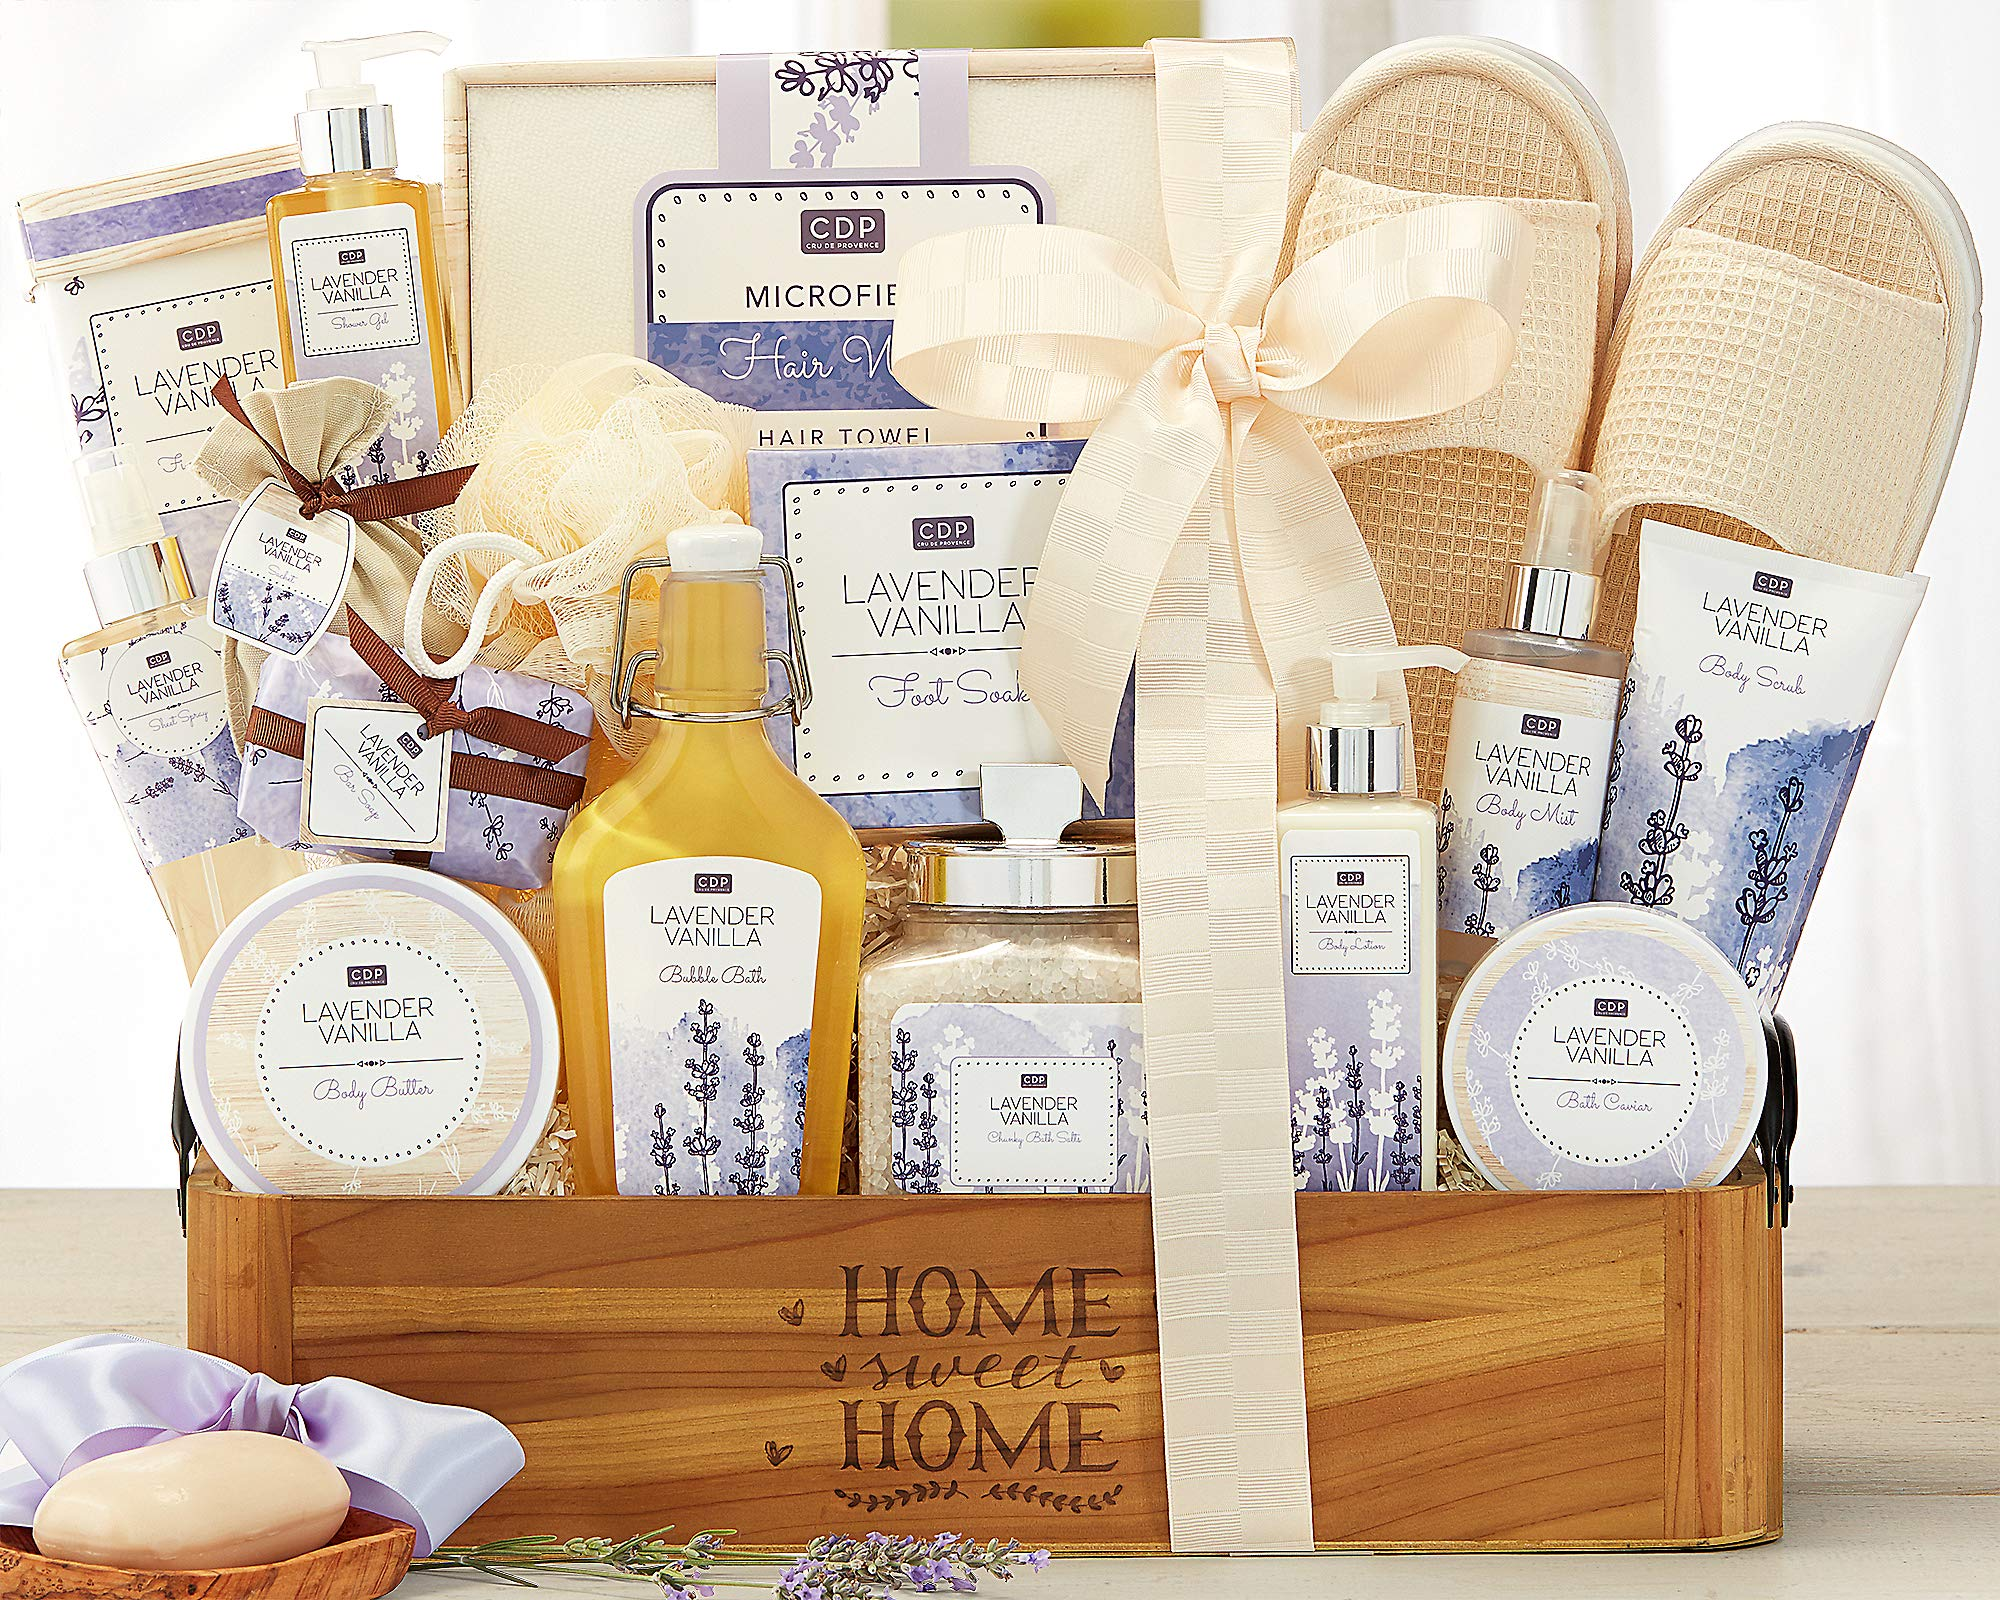 Lavender Vanilla Spa Experience Gift Basket Spa Gift Contains Bath Salts, Bath Caviar, Body Lotion, Body Scrub, Body Butter, Shower Gel, Bar Soap, Body Scrub and More ! by Wine Country Gift Baskets (Image #2)